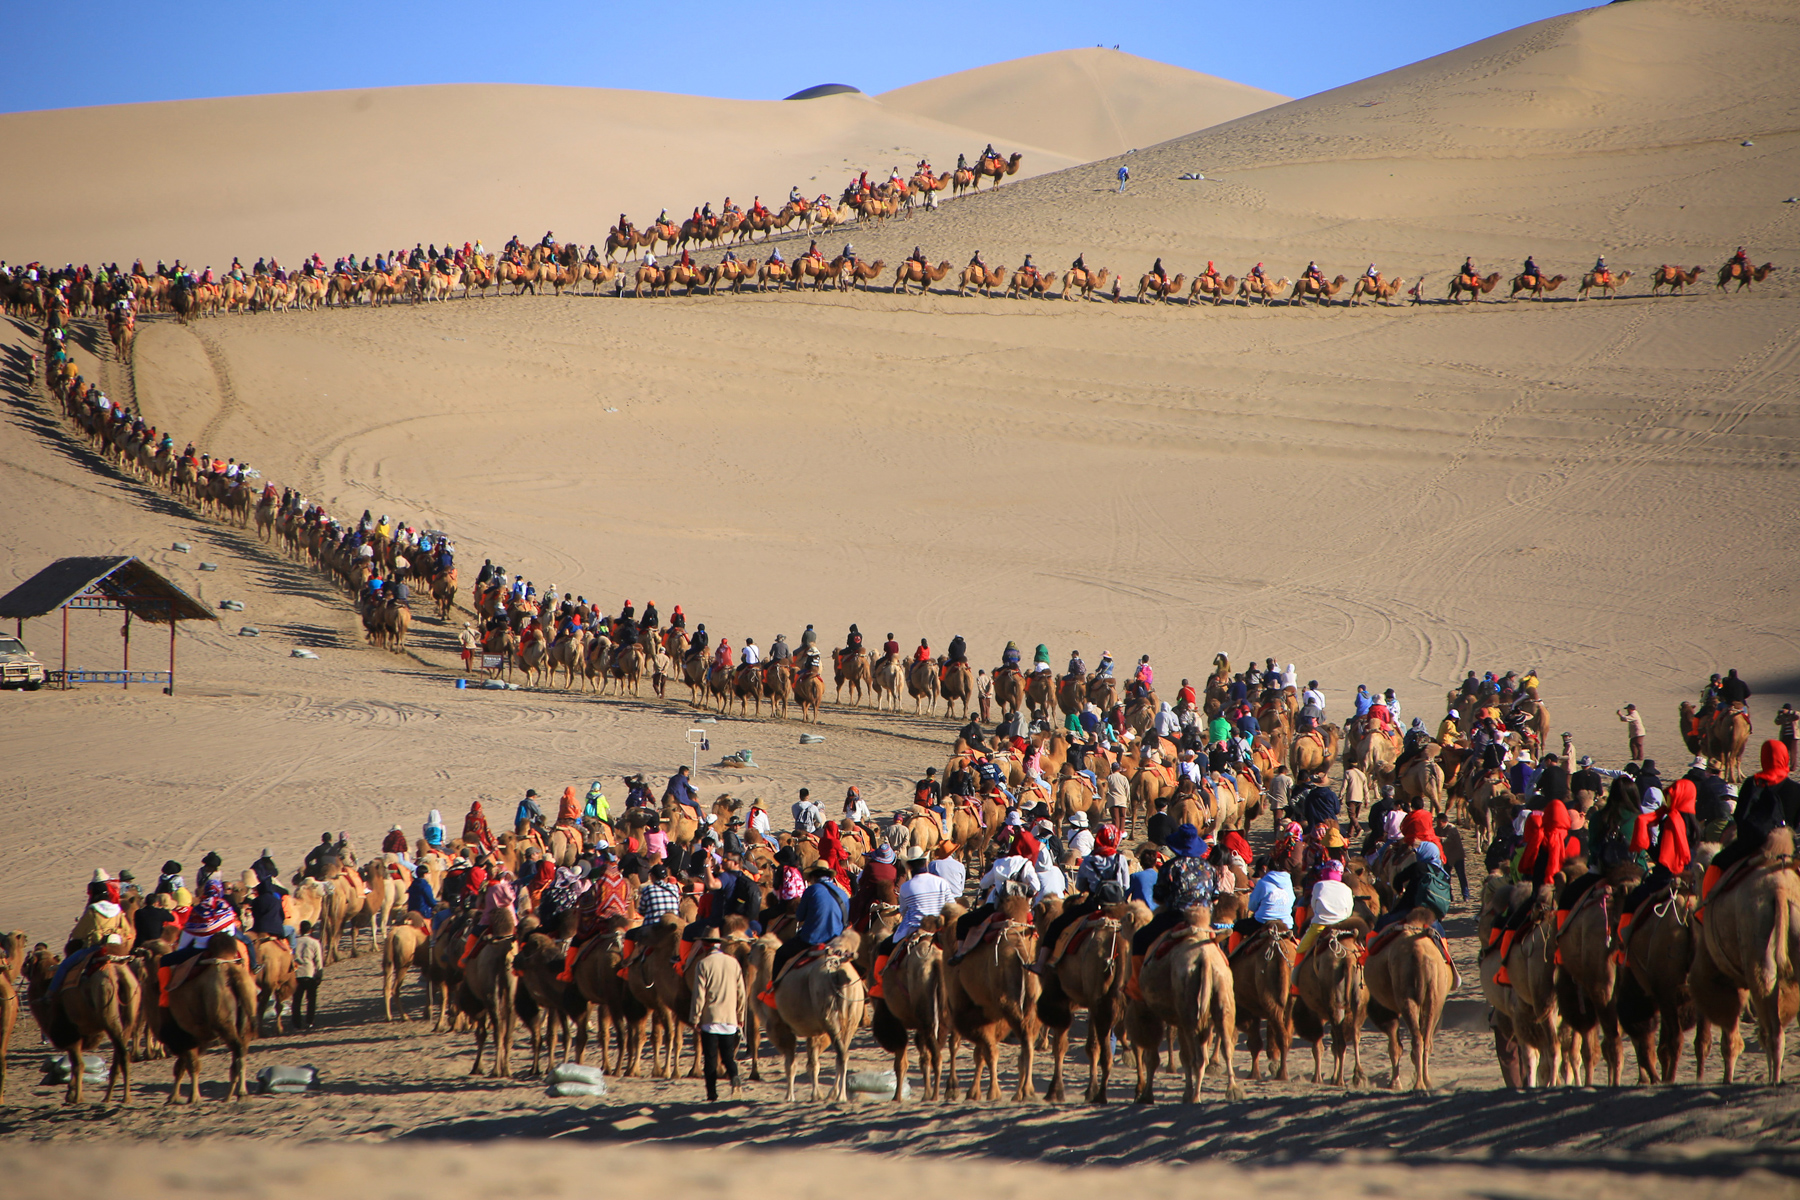 Tourists ride camels on Mingsha Mountain in Dunhuang, Gansu province, during China's National Day holiday, October 2. Dunhuang, an oasis in the Gobi desert, was a major center of international trade, art, and commerce on the Silk Road, as well as a religious pilgrimage site. (The Yomiuri Shimbun/AP Photo )